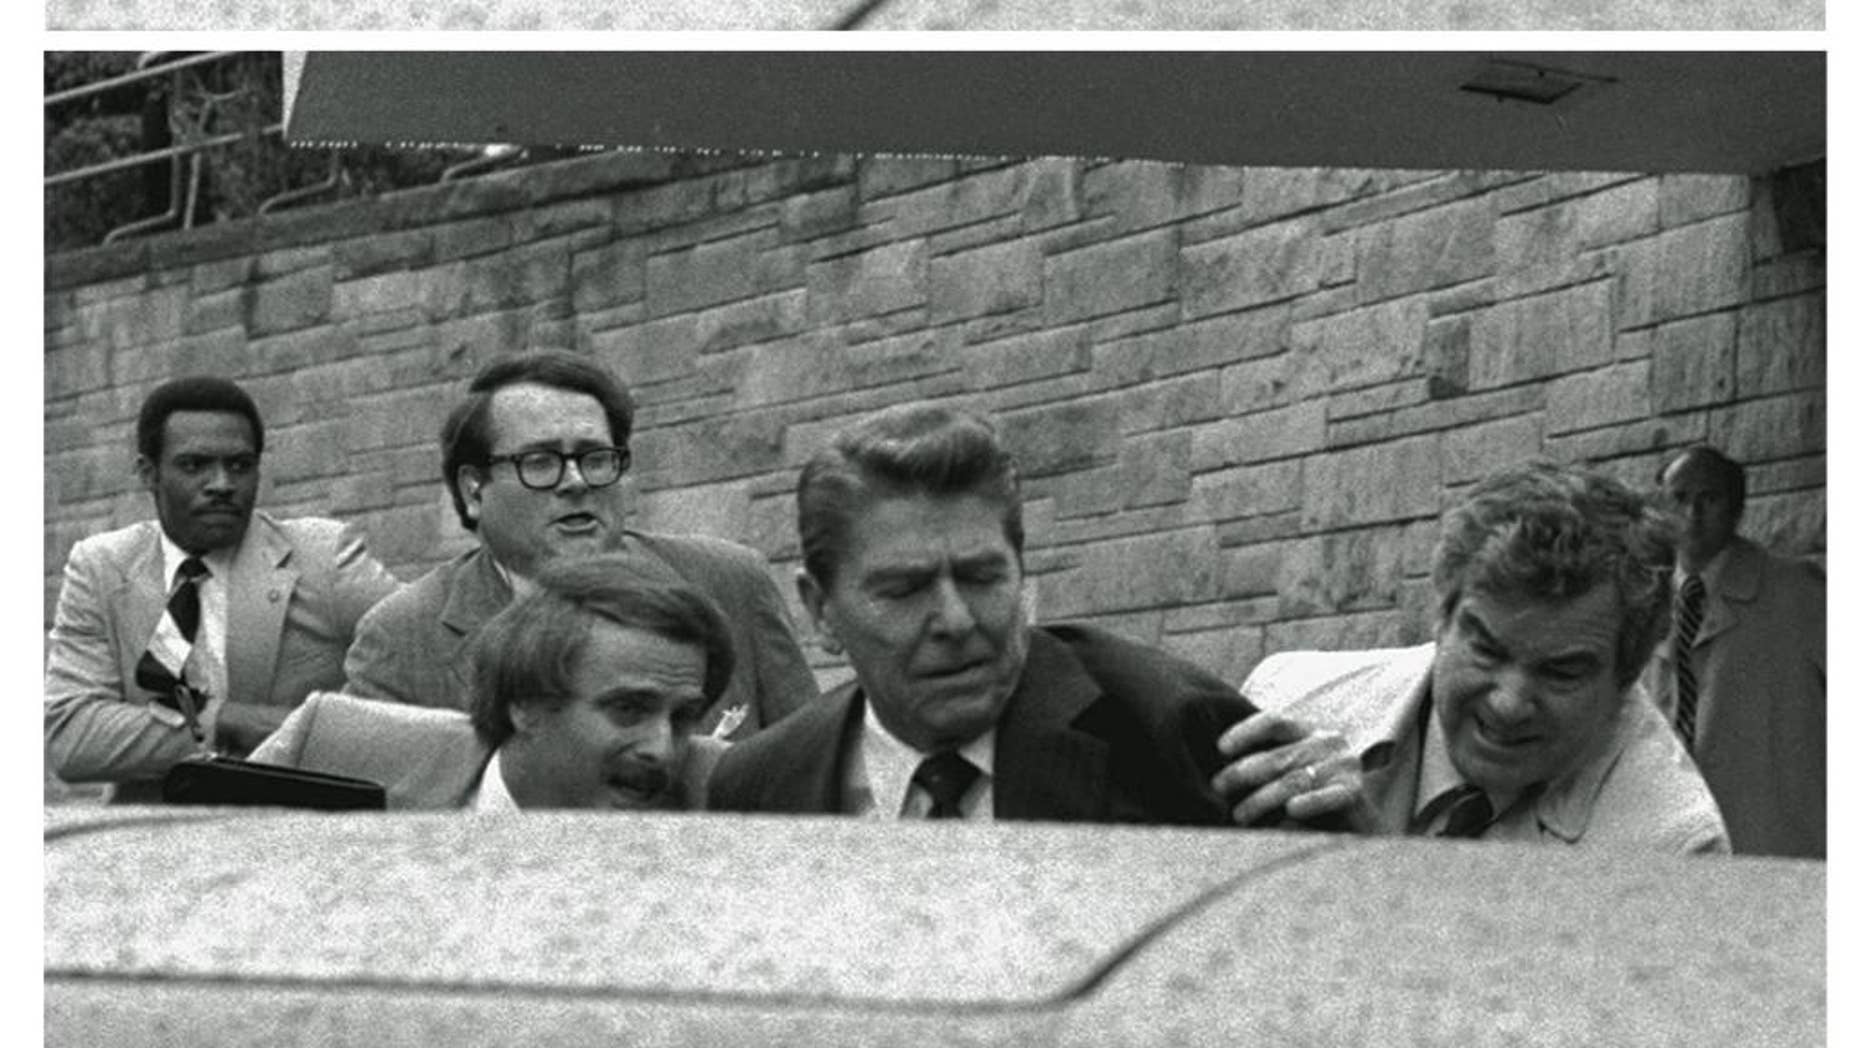 FILE - In this March 30, 1981 black-and-white three picture combo file photo, President Reagan waves, then looks up before being shoved into Presidential limousine by Secret Service agents after being shot outside a hotel in Washington. The last man to shoot an American president now spends most of the year in a house overlooking the 13th hole of a golf course in a gated community. He takes long walks along tree-lined paths, plays guitar and paints, grabs fast food at Wendy's. He drives around town in a silver Toyota Avalon, a car that wouldn't attract a second glance. Often, as if to avoid detection, he puts on a hat or visor before going out. (AP Photo/Ron Edmonds, File)